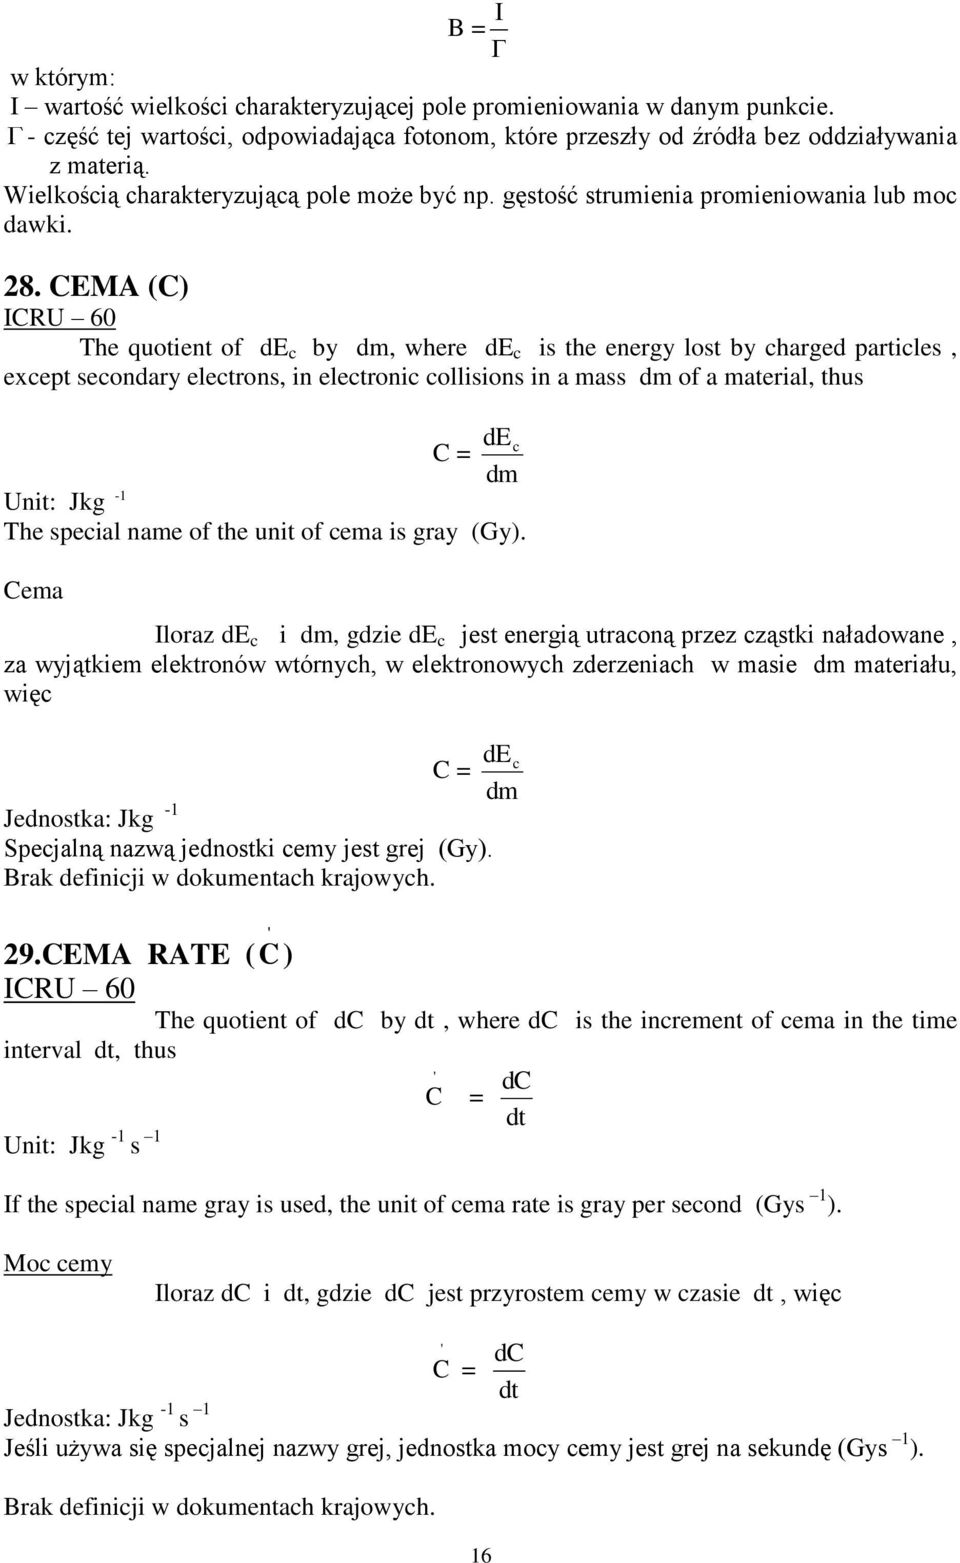 CEMA (C) ICRU 60 The quotient of de c by dm, where de c is the energy lost by charged particles, except secondary electrons, in electronic collisions in a mass dm of a material, thus de C = c dm